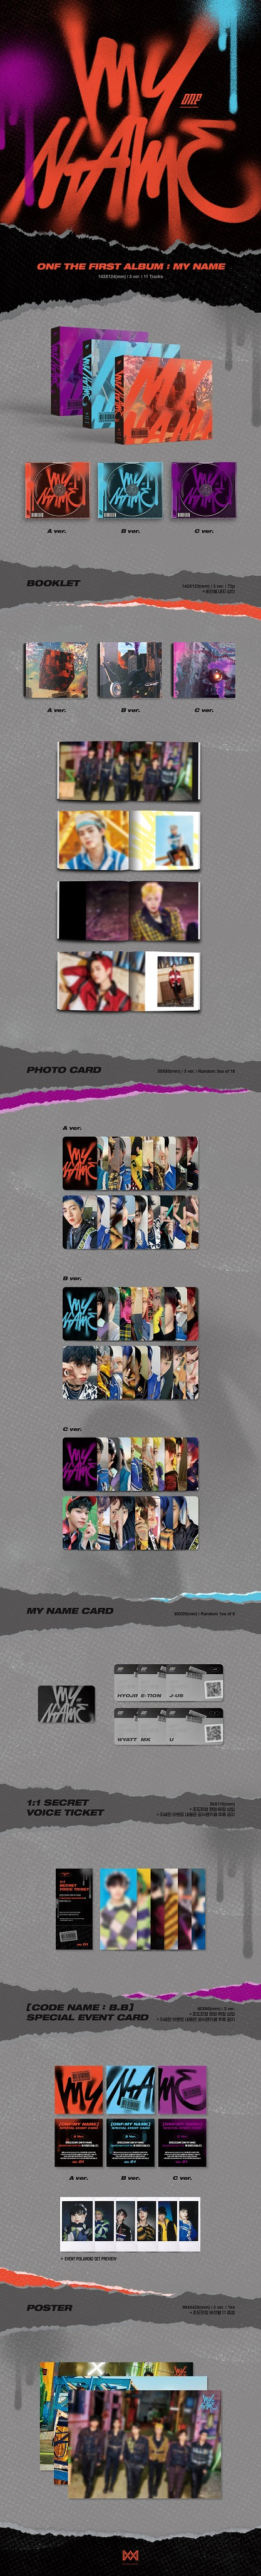 ONF - THE FIRST ALBUM ONF:MY NAME Product Details